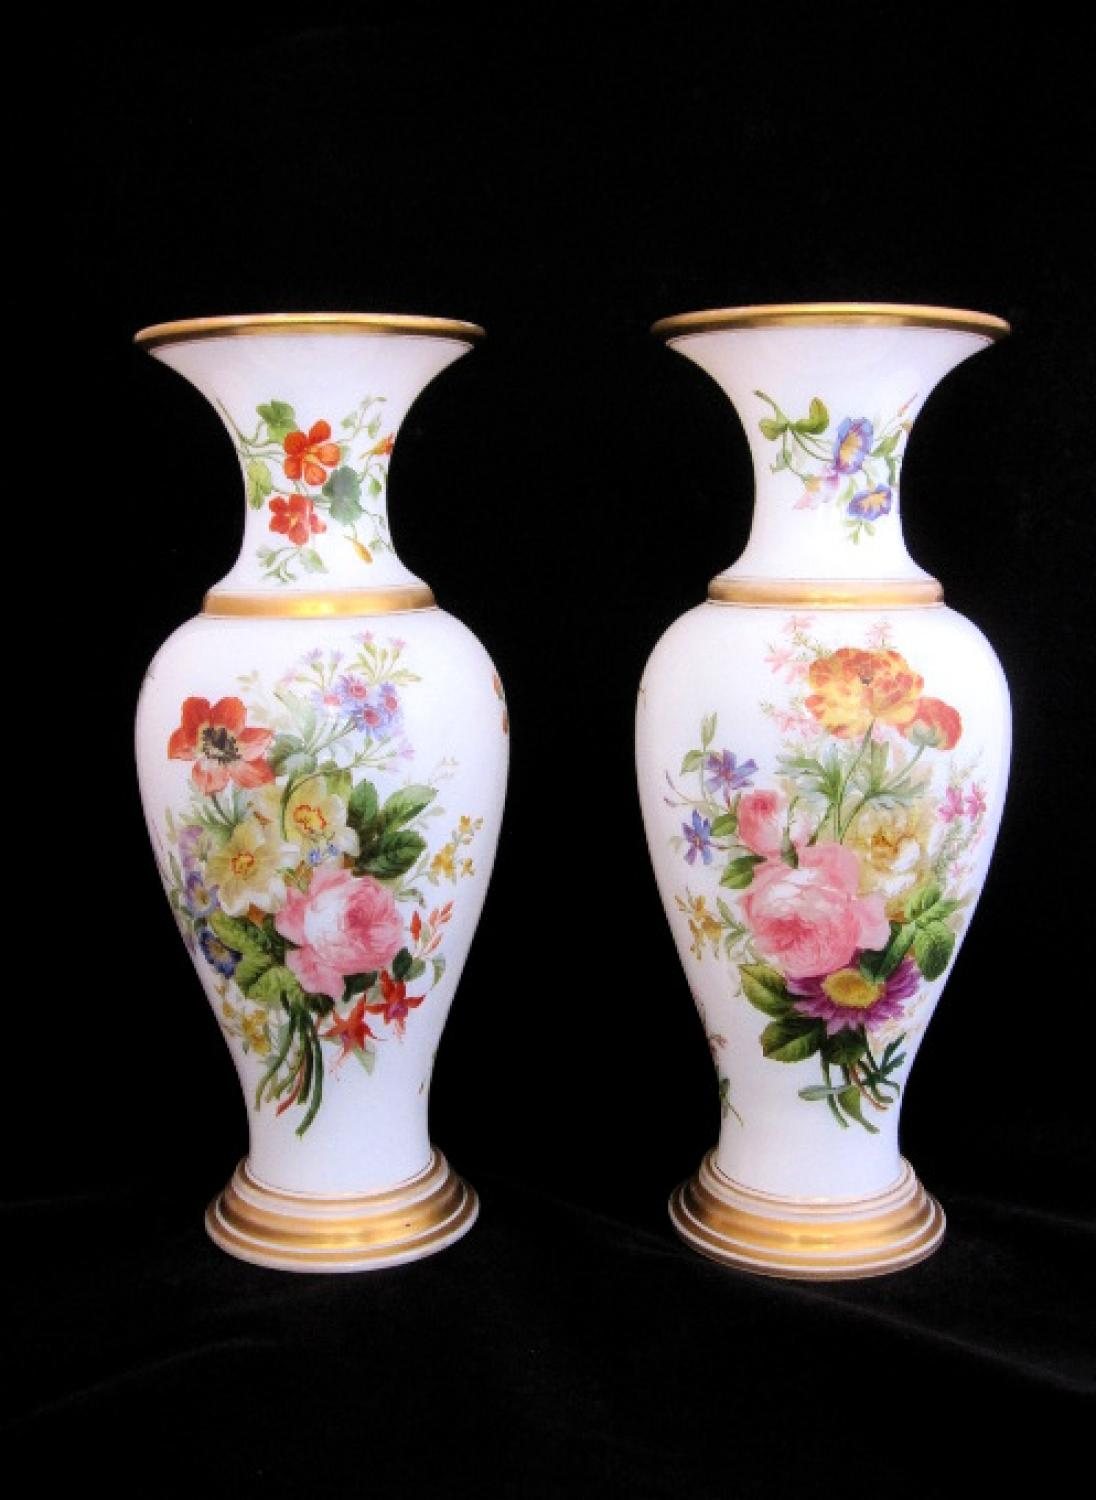 Antique Baccarat Opaline Vases